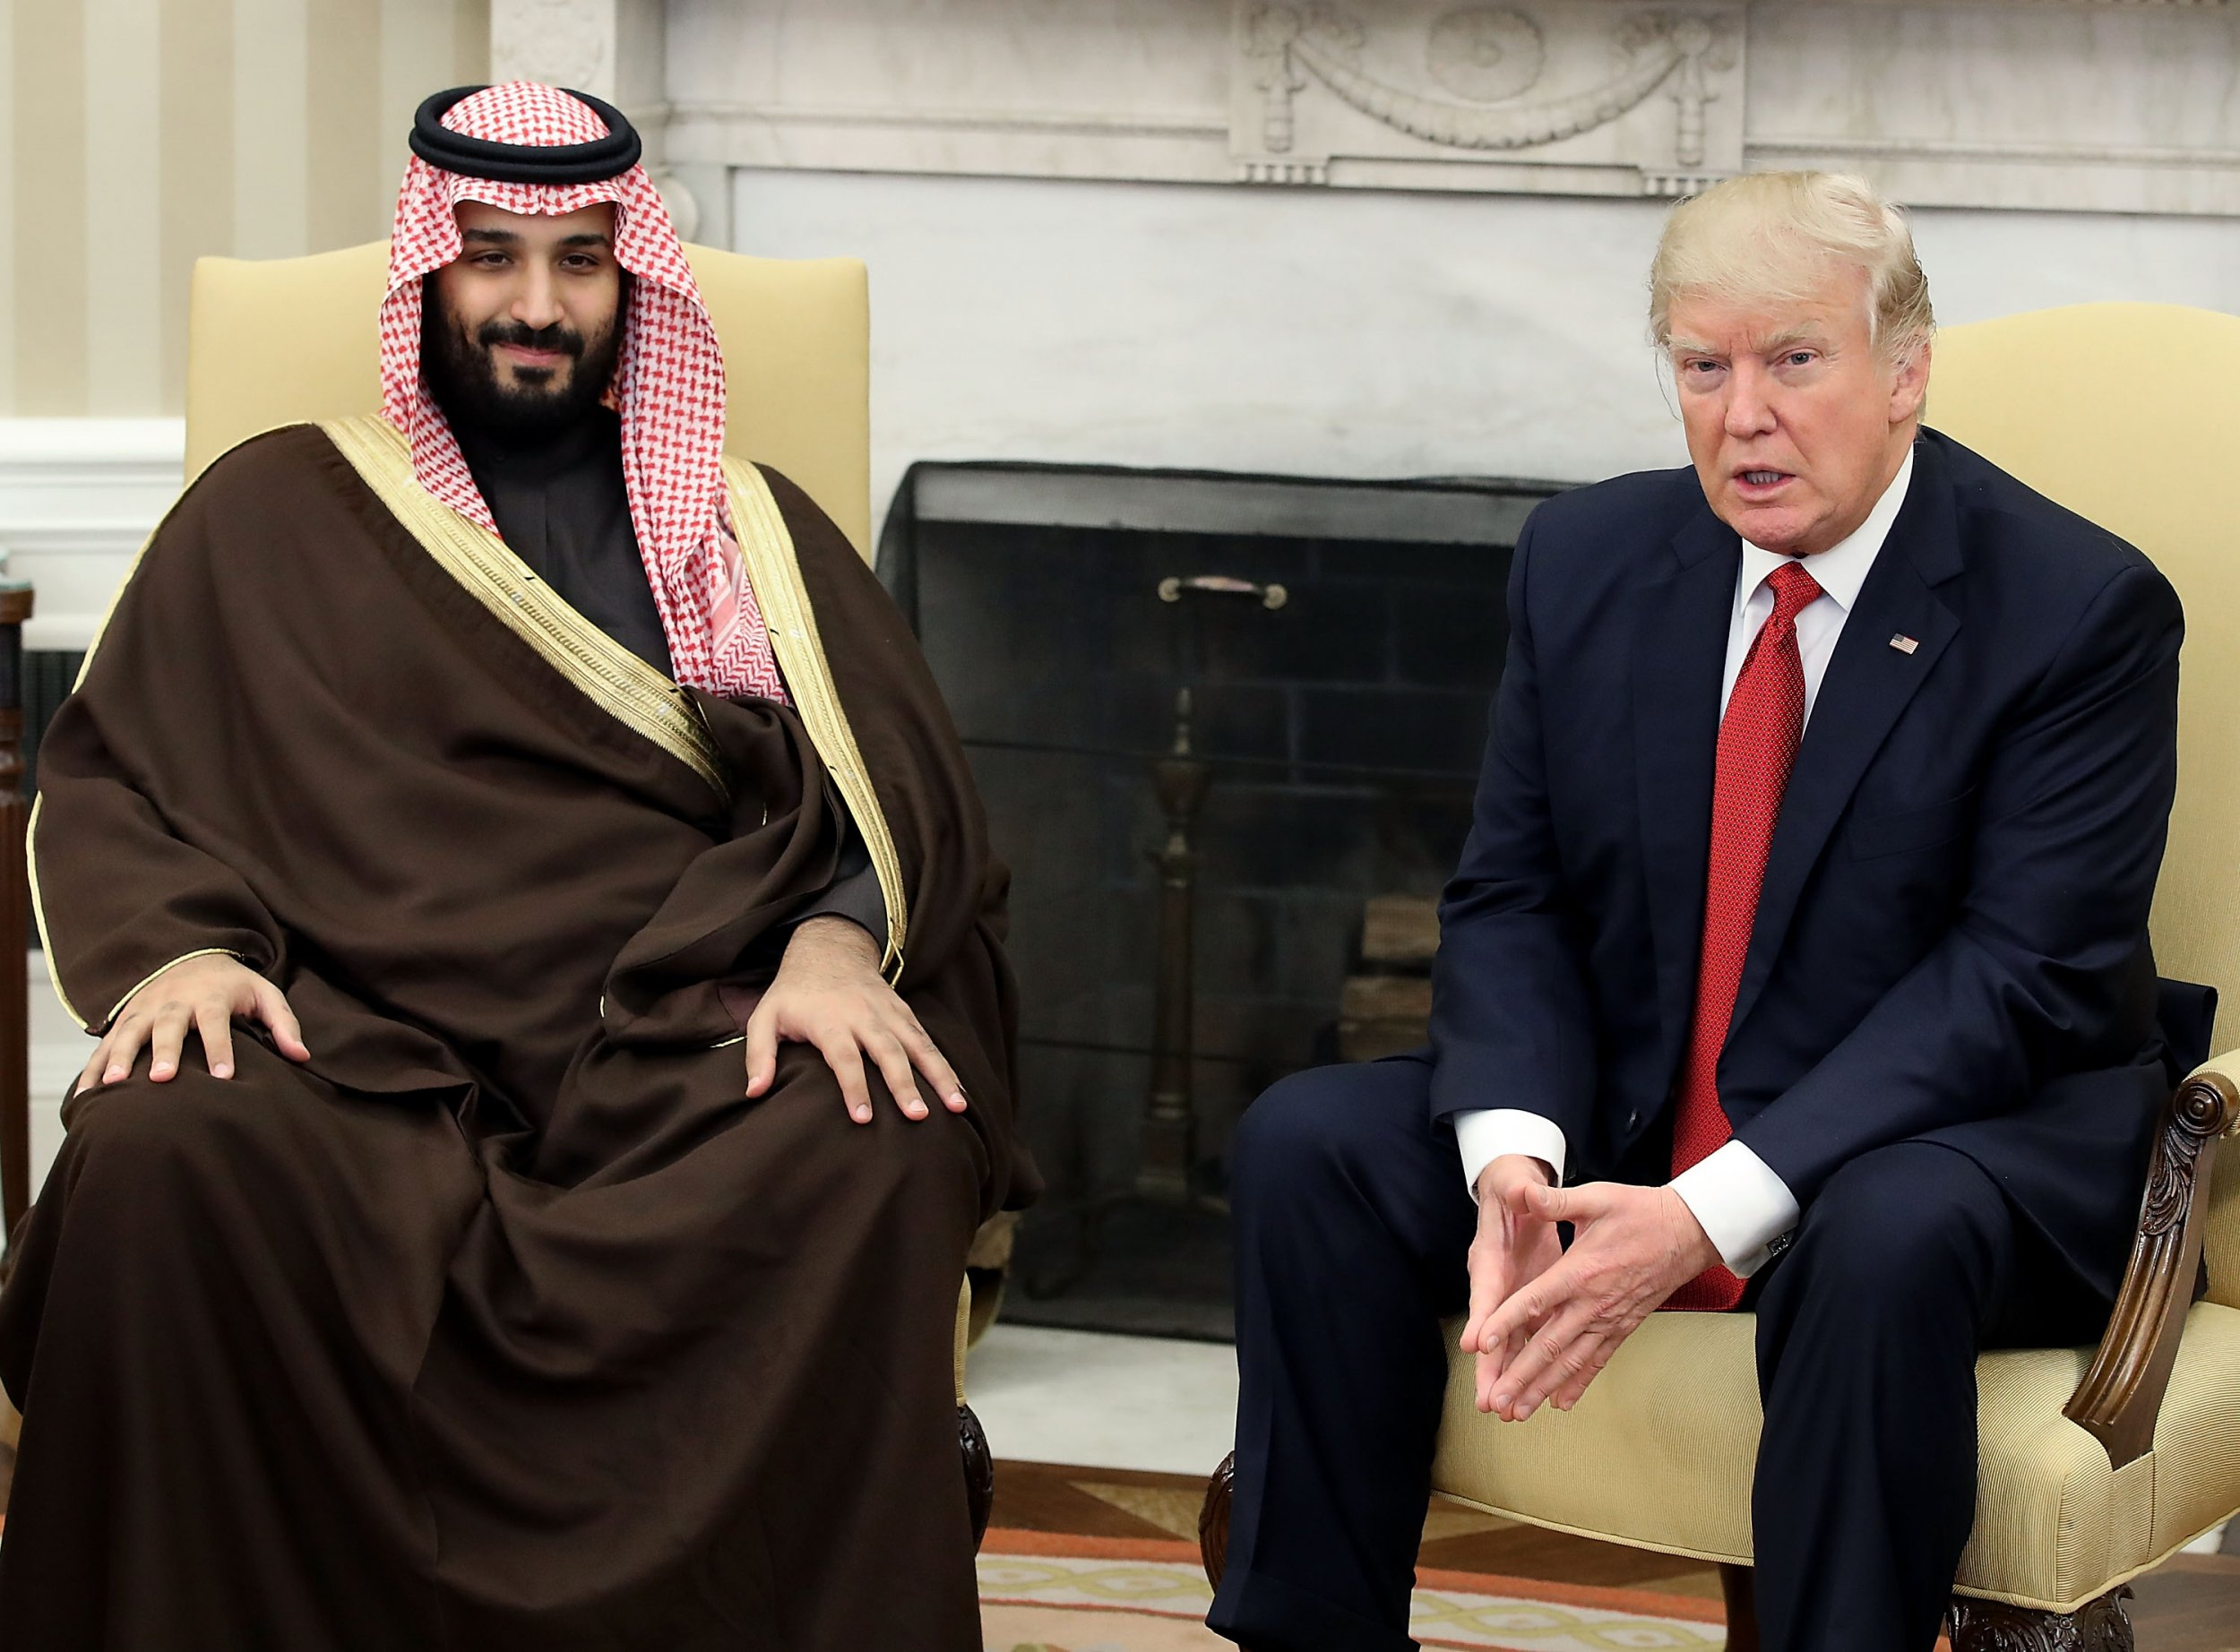 GettyImages-653337722 Mohammed bin Salman with Donald Trump